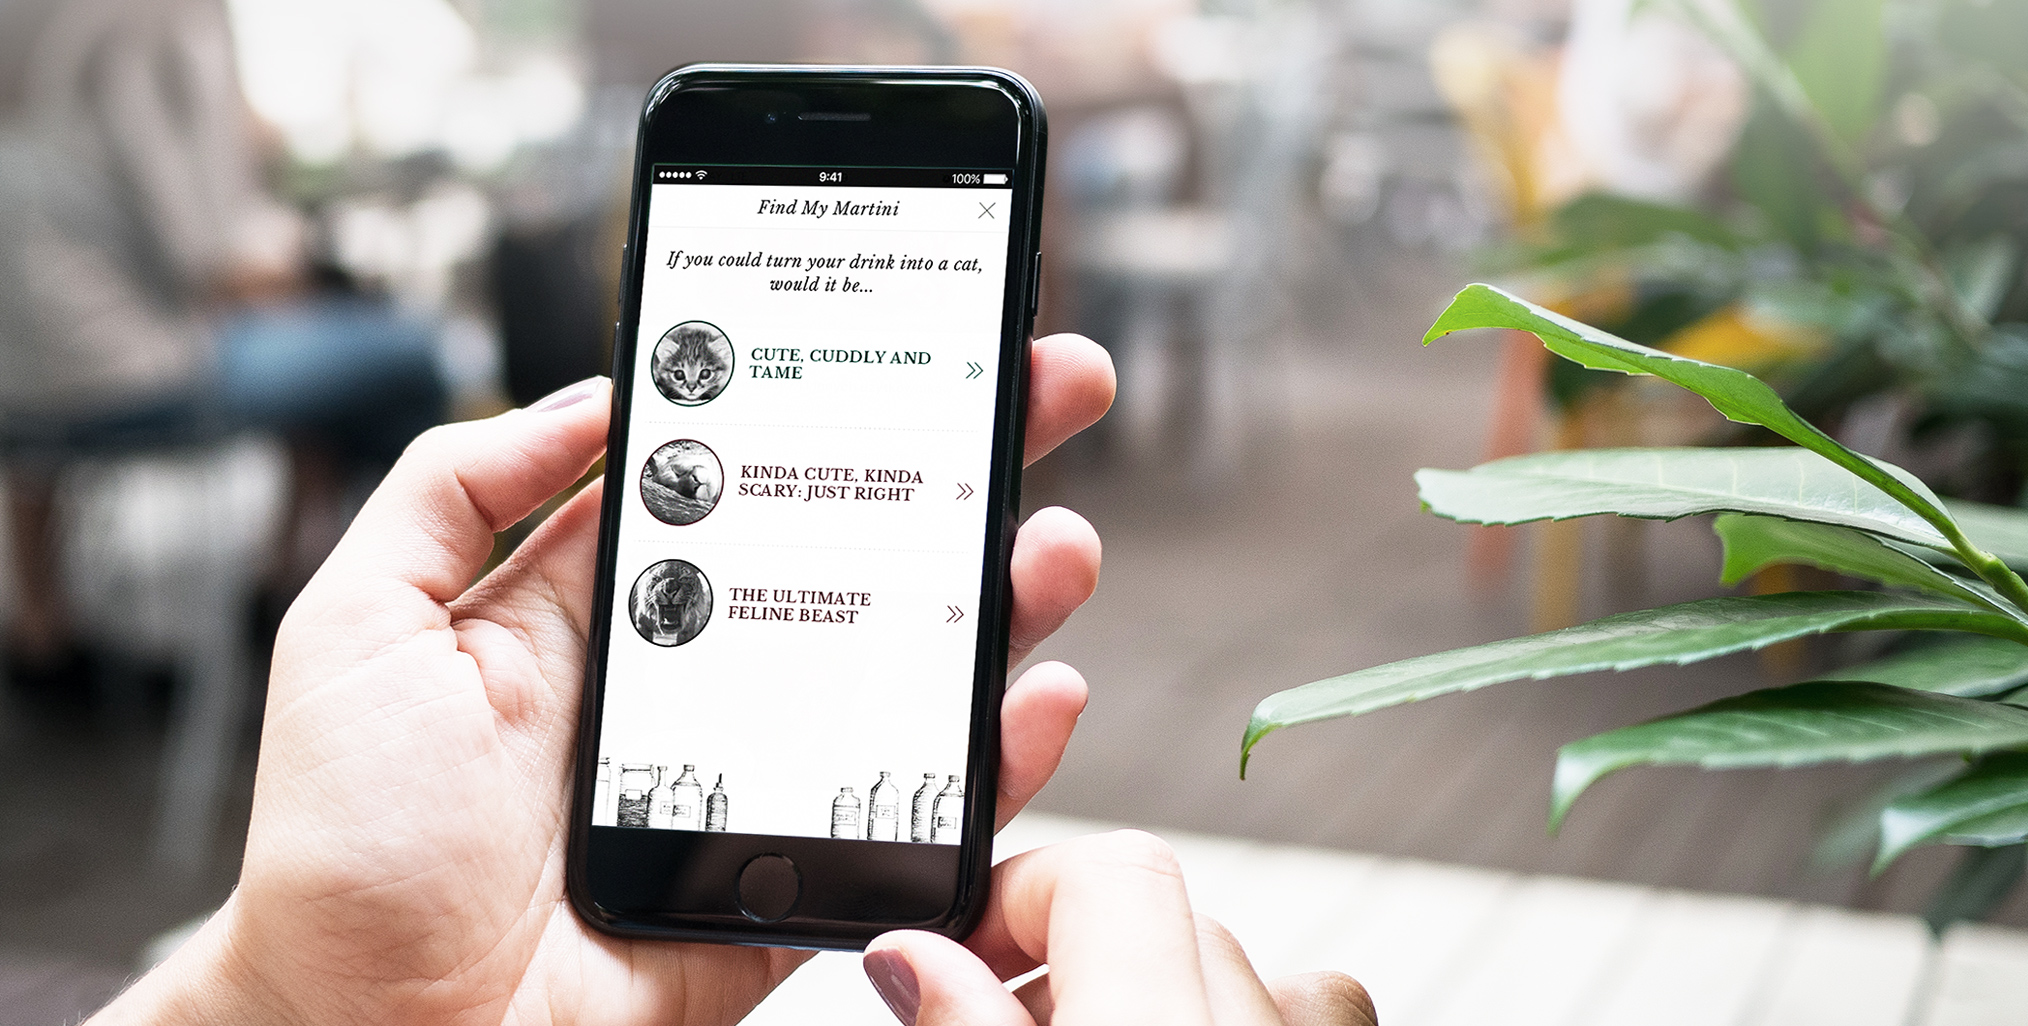 The Sipsmith app in use on mobile phone